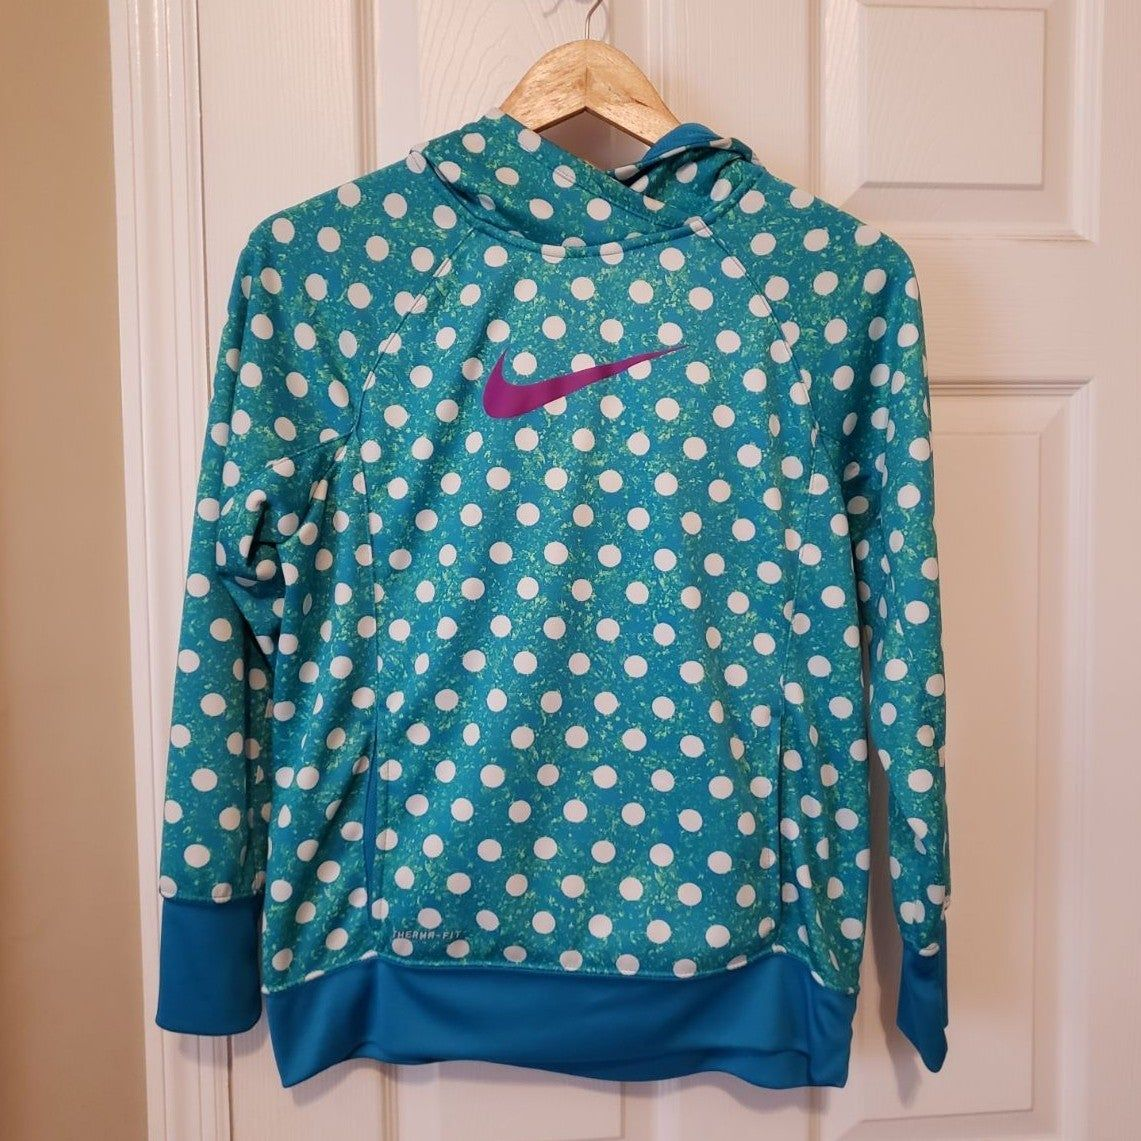 Nike Therma Fit Poka Dot Youth Hoodie Xl Turquoise Blue With White Poka Dots Fushia Swoosh May Fit Ladies Xs Or Small See Measurements Nike Tops Nike Tops [ 1141 x 1141 Pixel ]